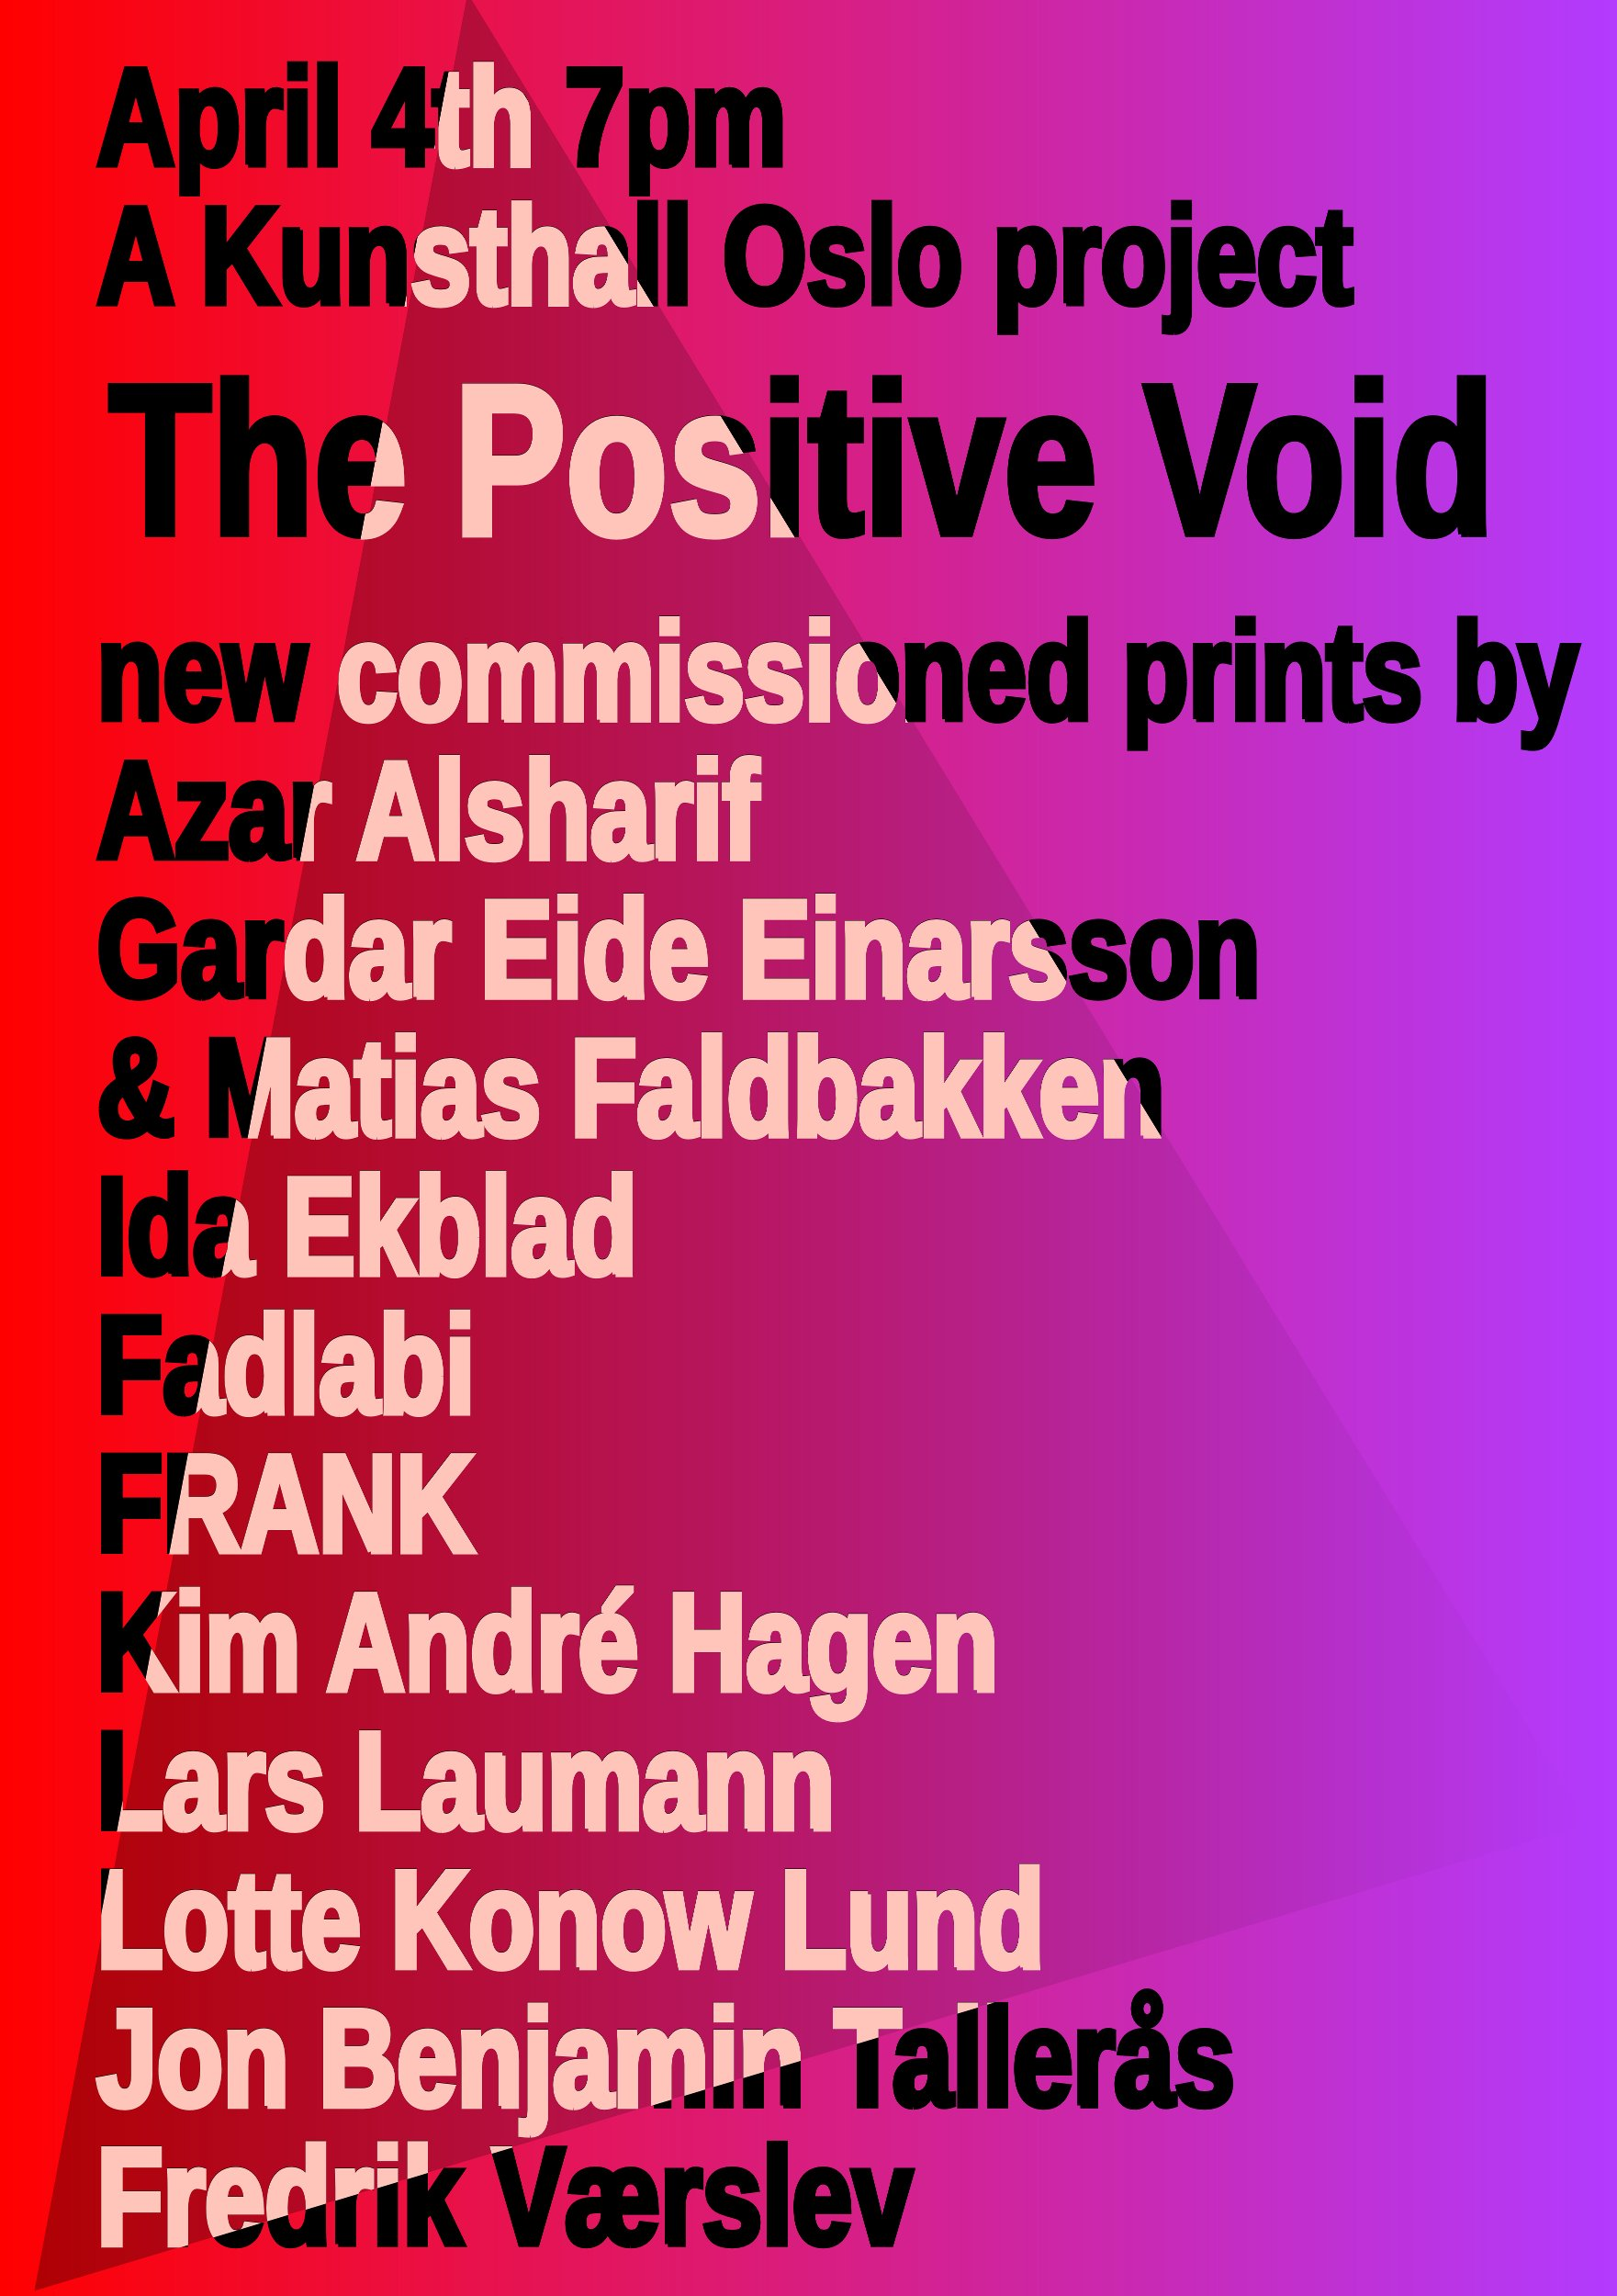 The Positive Void flyer image